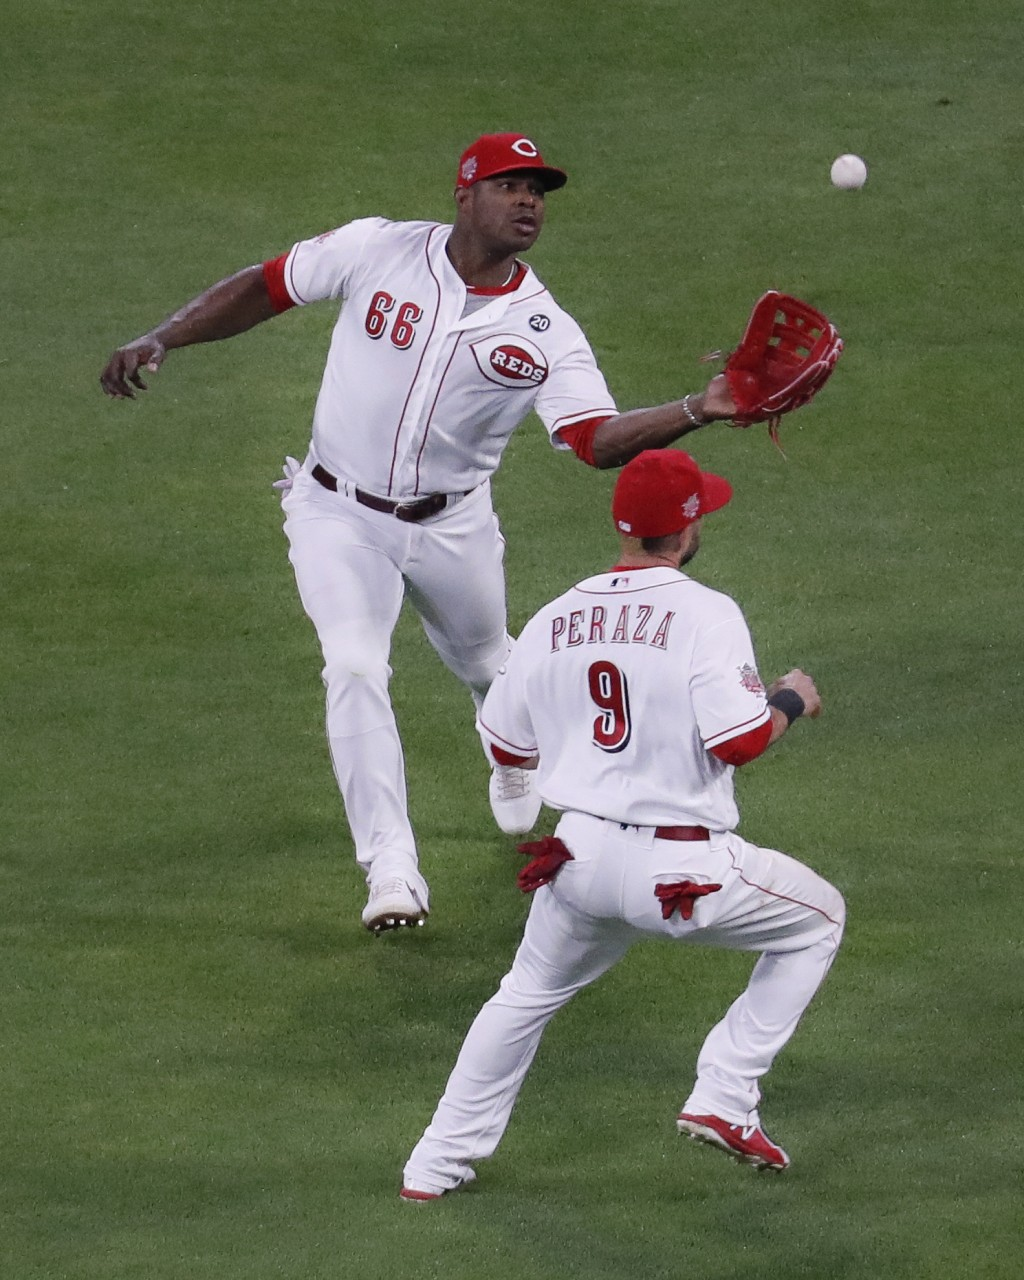 Cincinnati Reds right fielder Yasiel Puig (66) catches a fly ball by Chicago Cubs' Jose Quintana for an out, next to second baseman Jose Peraza during